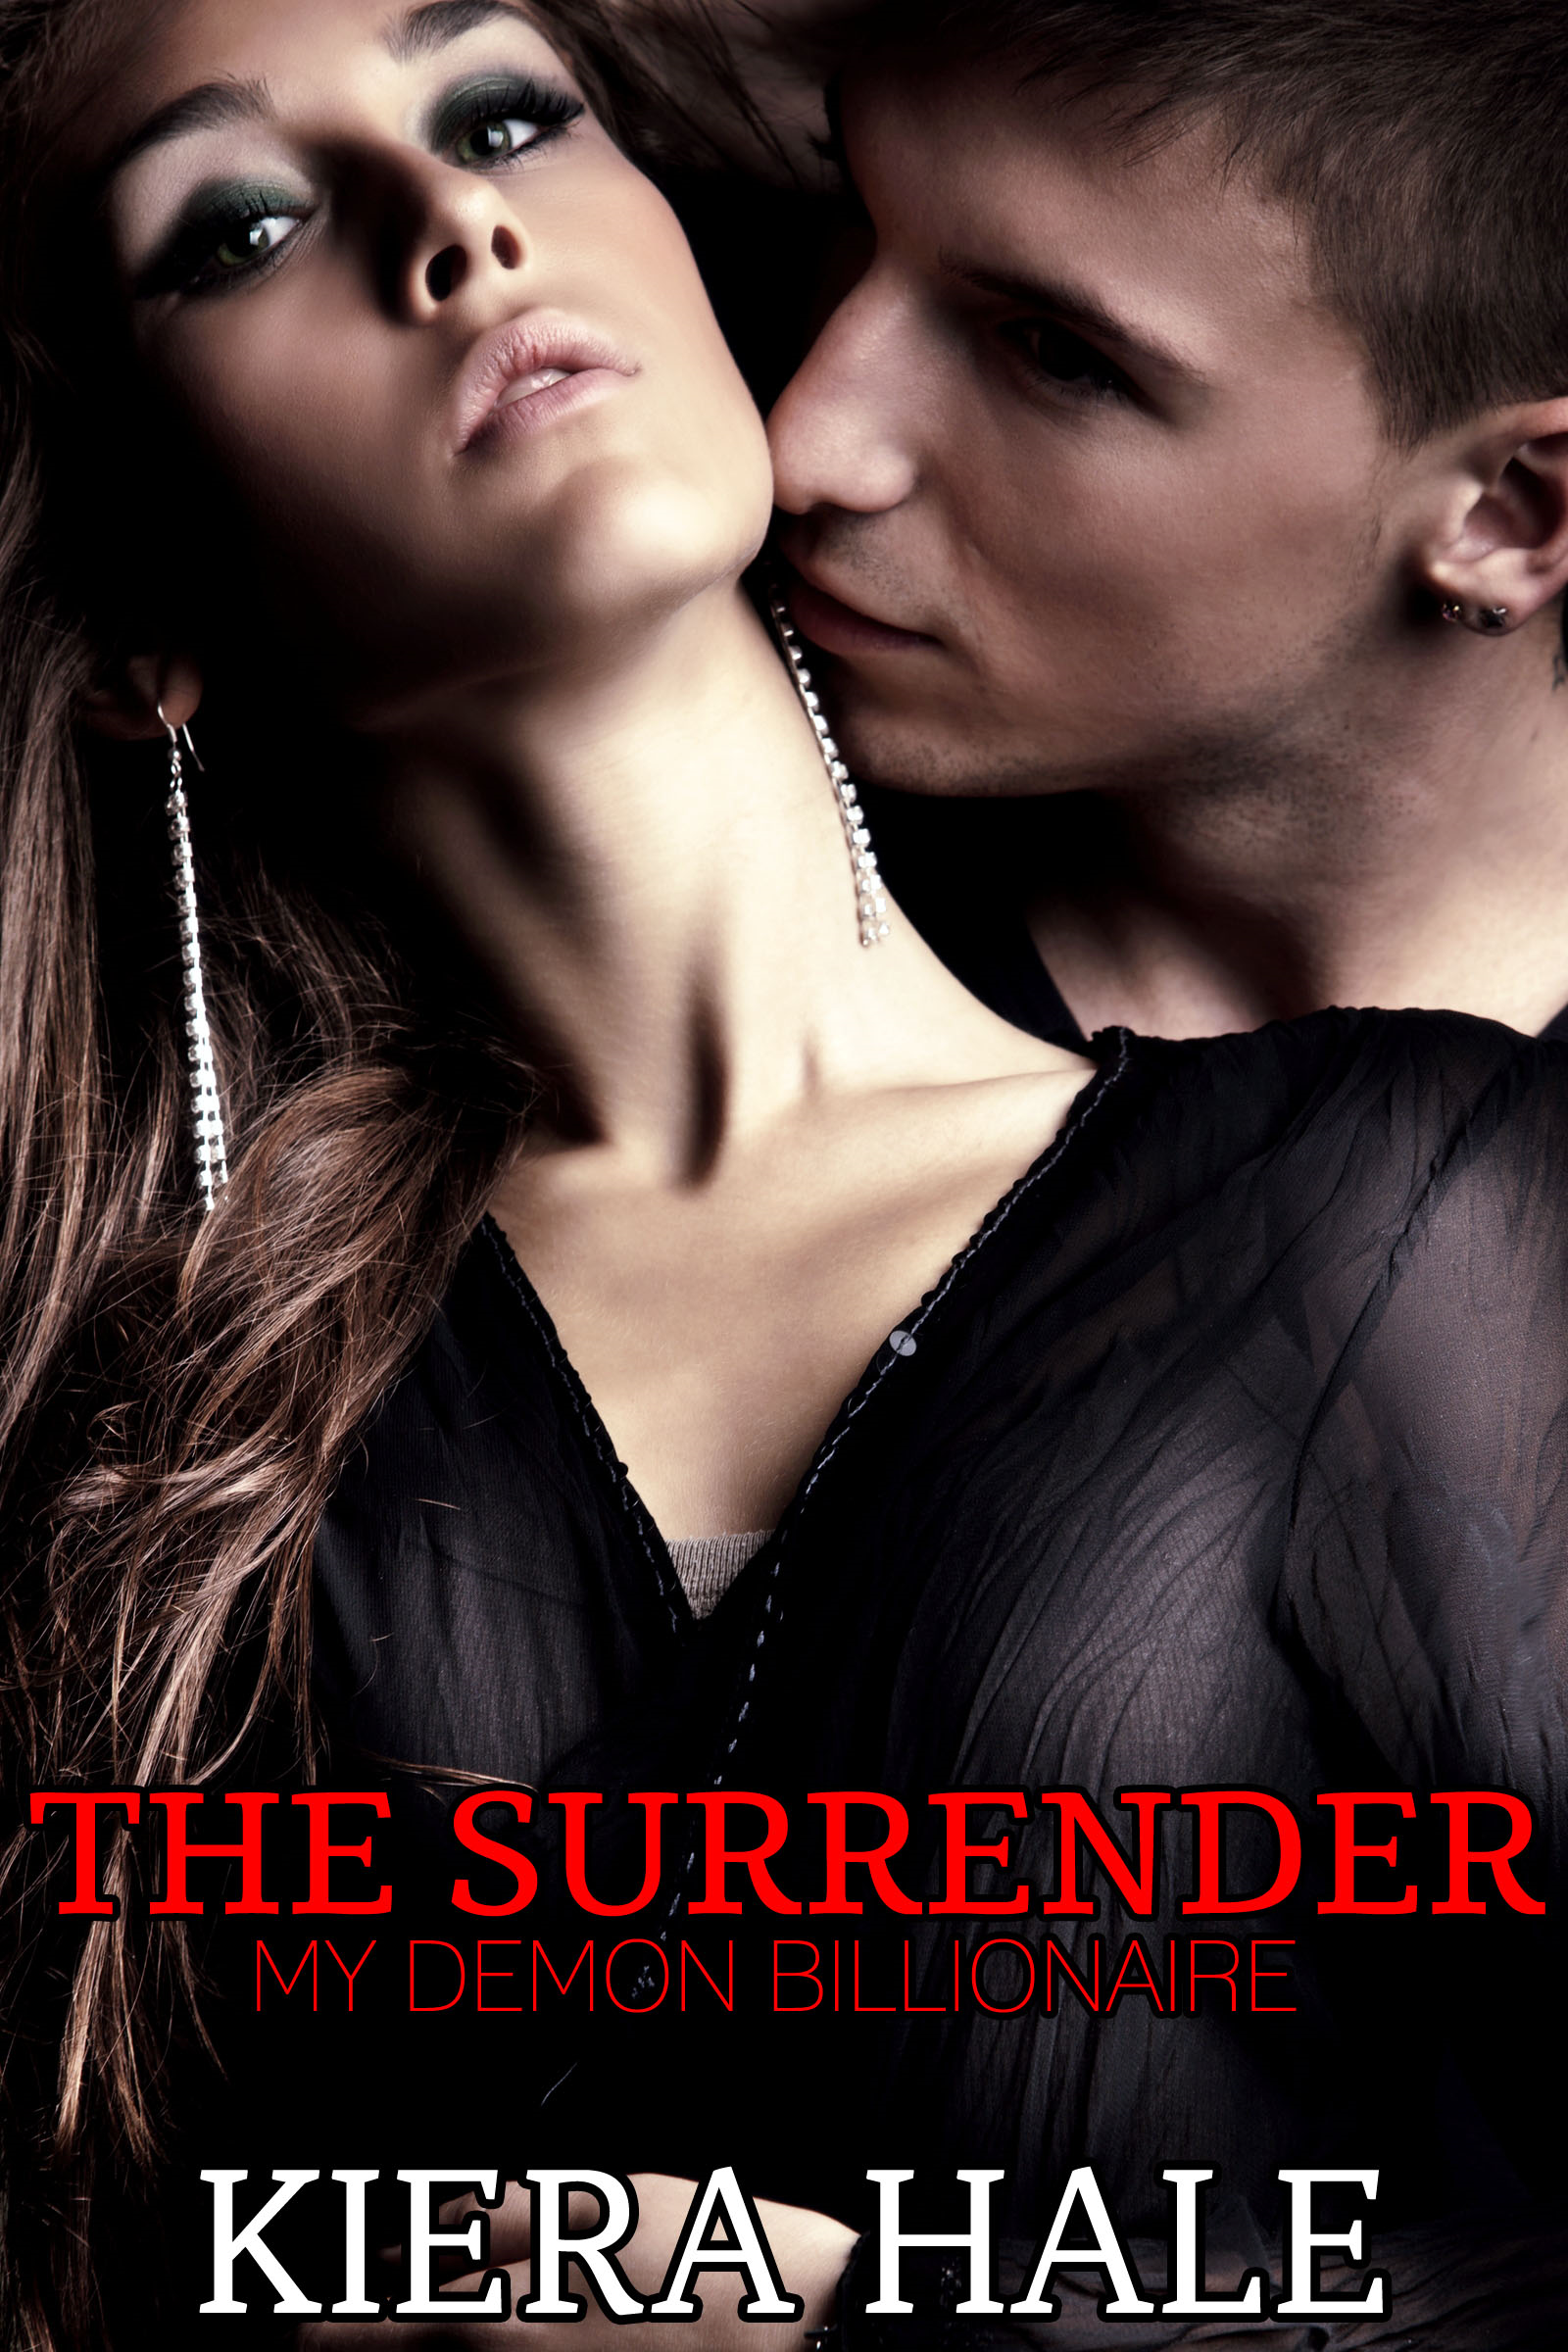 My Demon Billionaire Trilogy (Part 3: The Surrender)